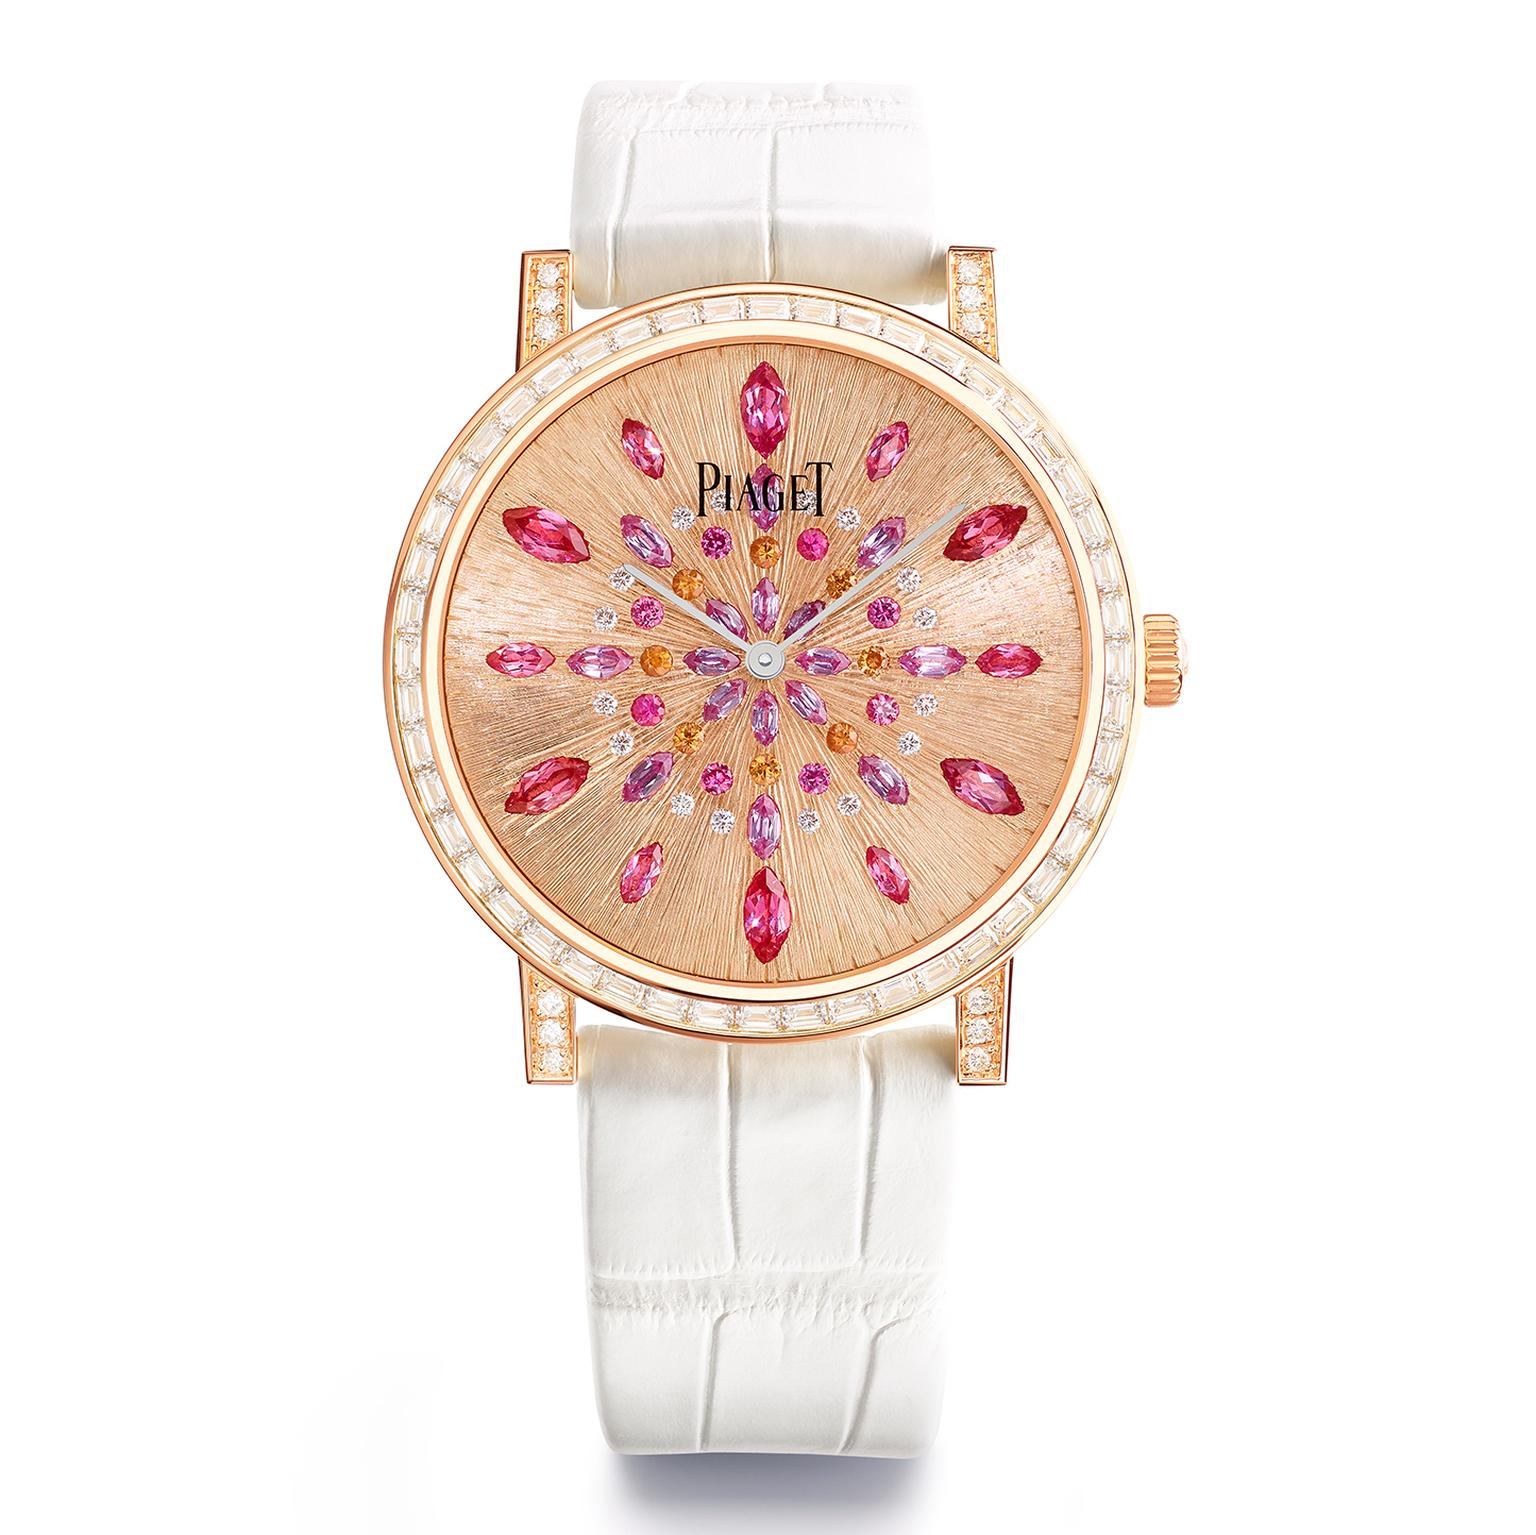 Piaget Viva L'Arte jewellery watch